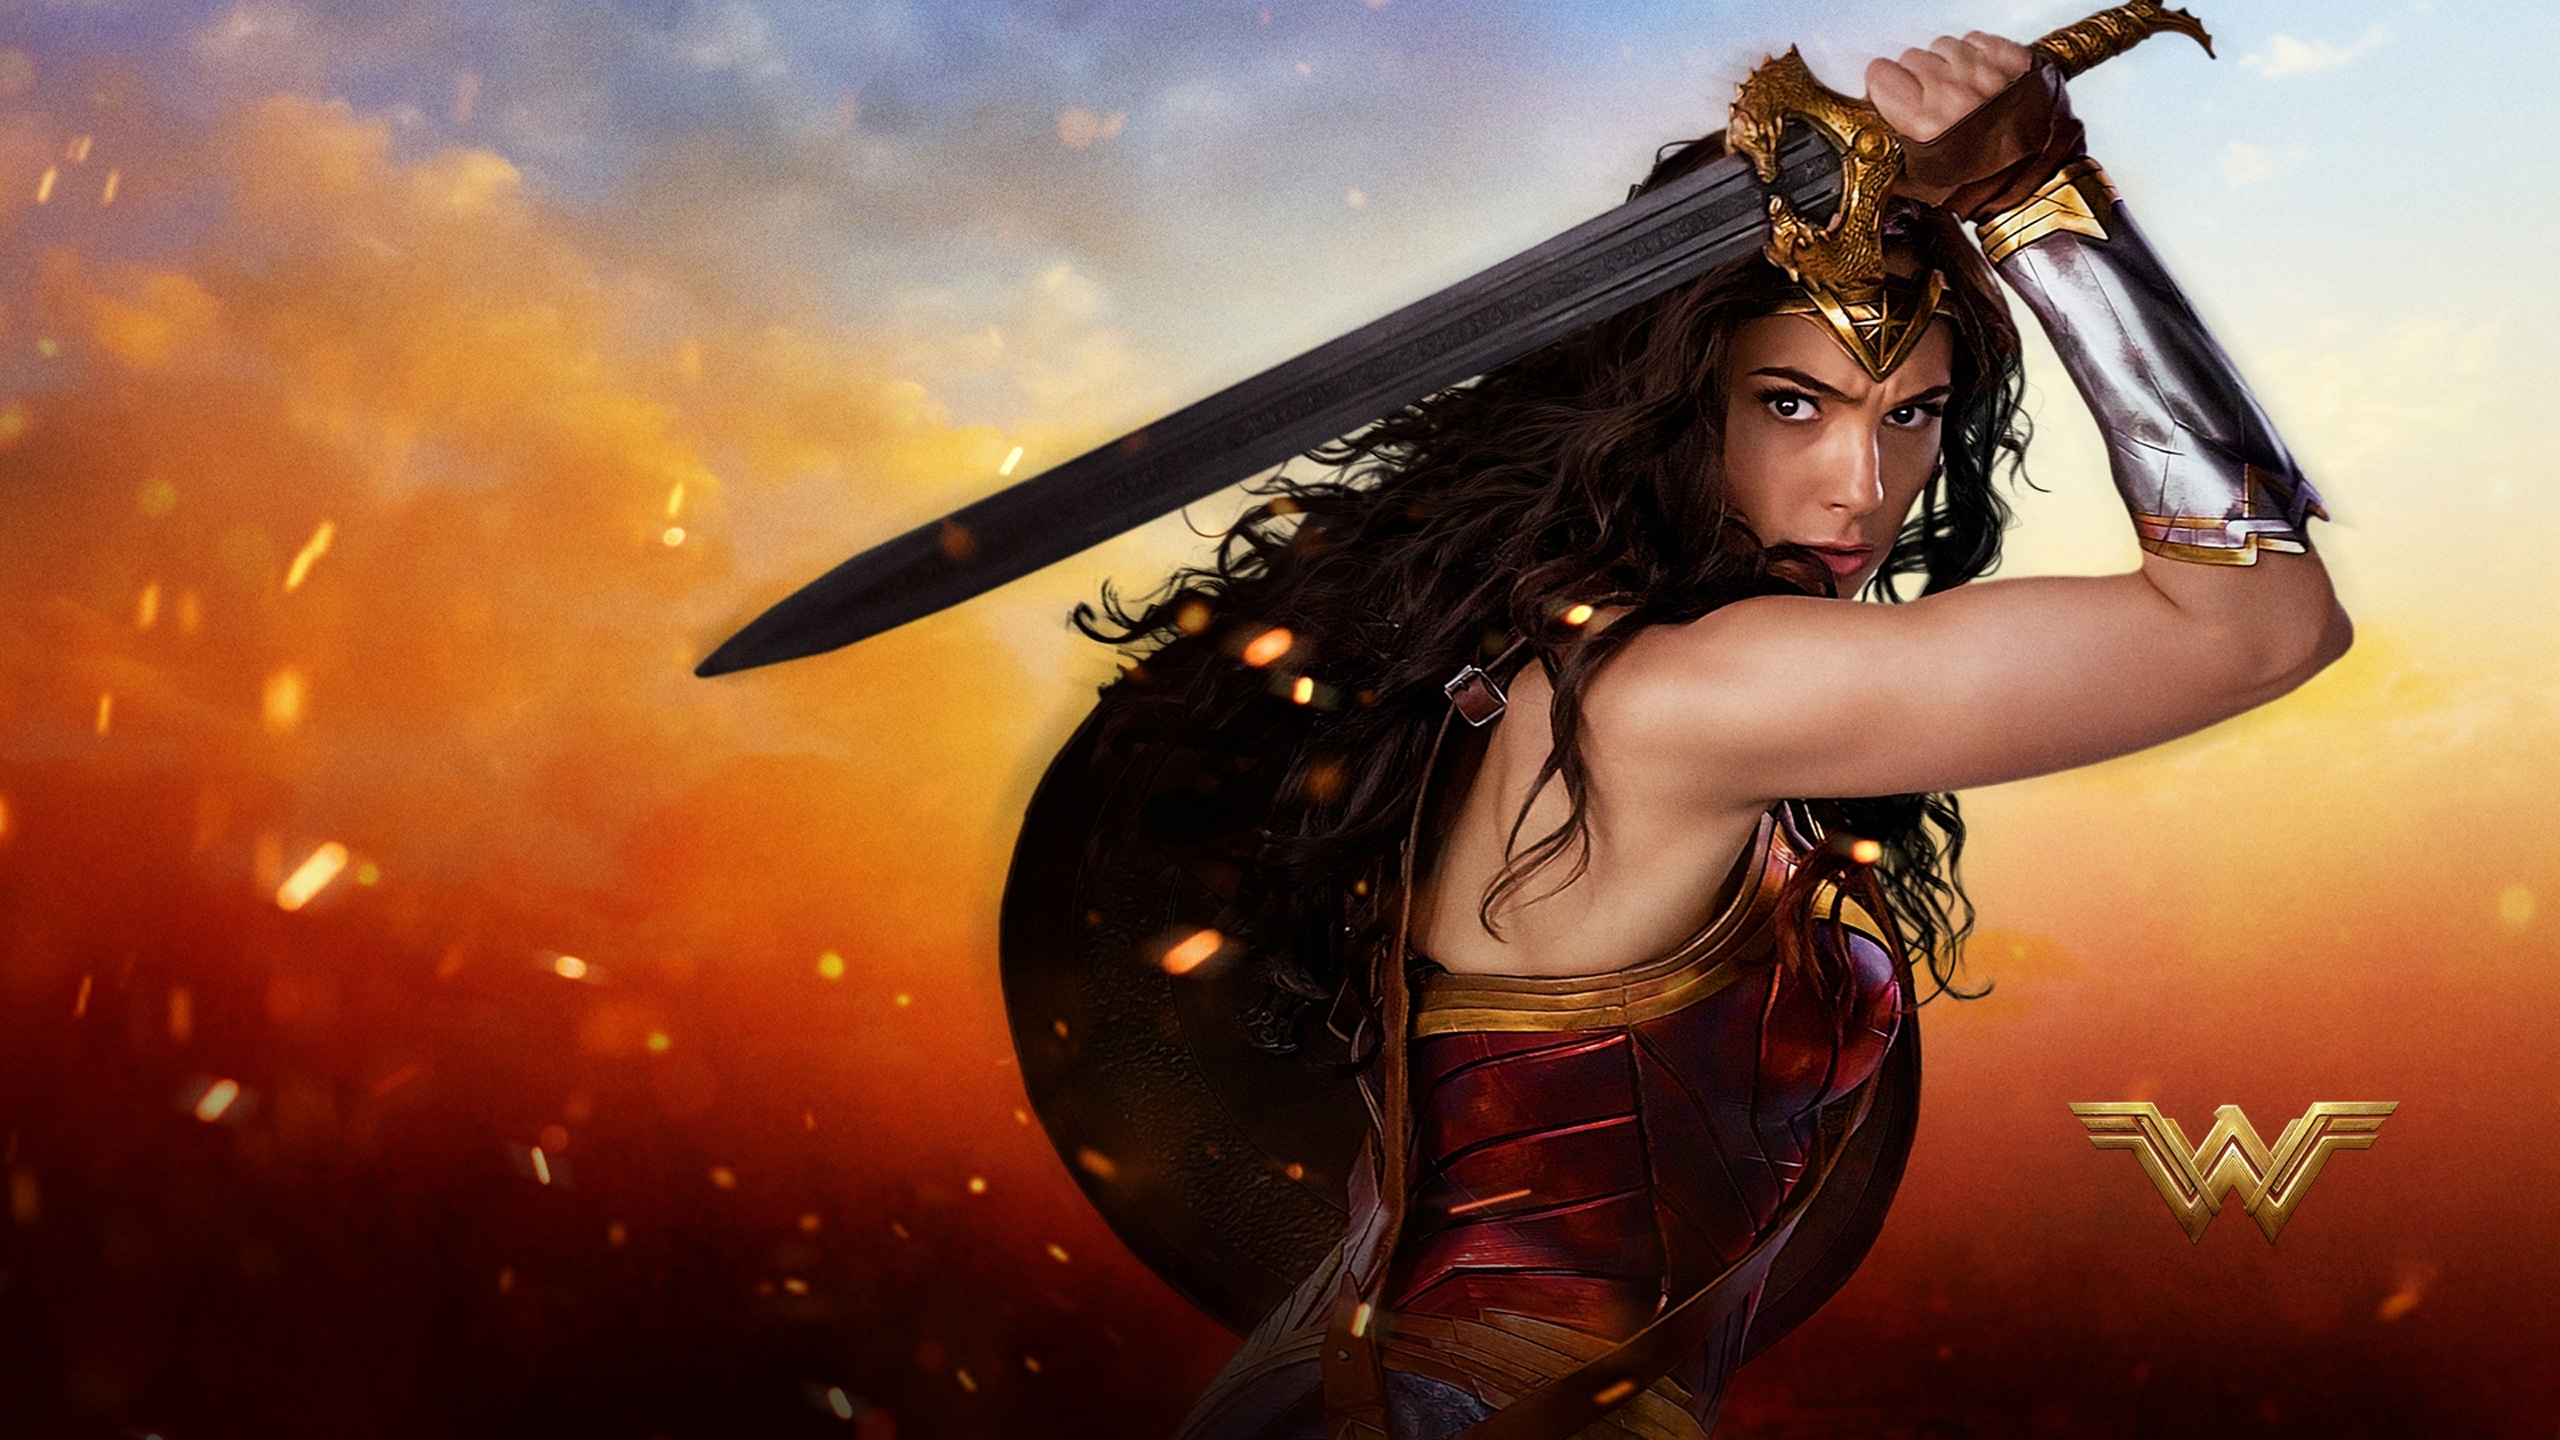 2017 wonder woman hd, hd movies, 4k wallpapers, images, backgrounds